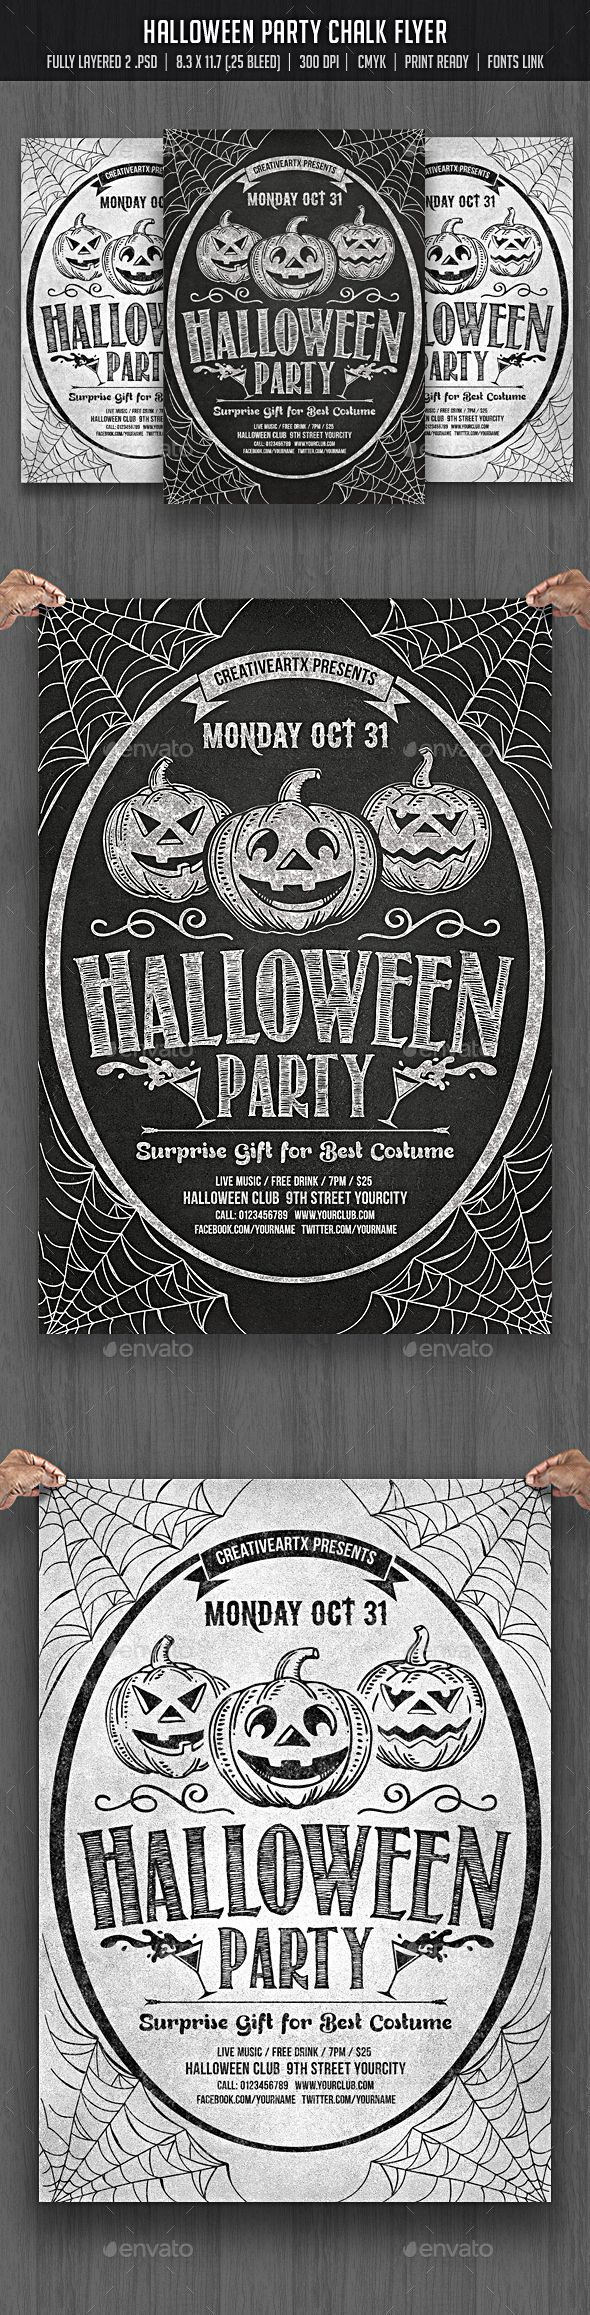 Halloween Party Chalk Flyer | Flyers, Halloween and Event flyers